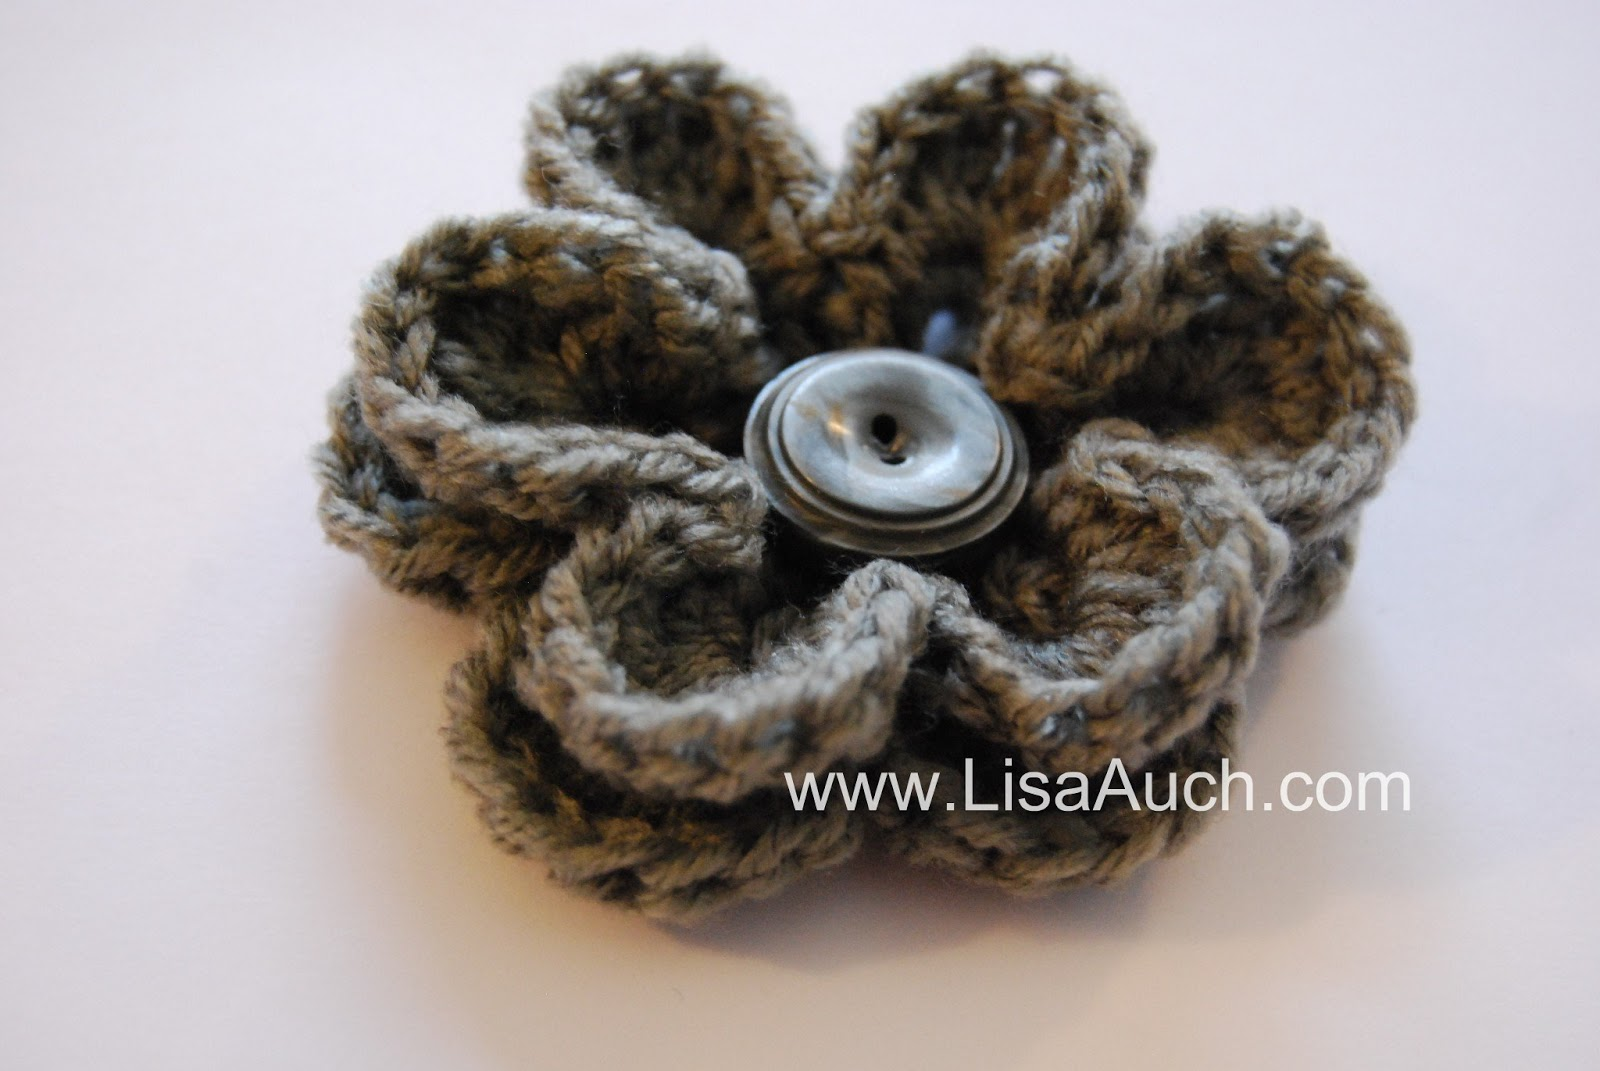 Easy crochet flower patterns 2 free crochet flower patterns note petal rounds are worked from front of flower to back start with one color ch 5 sl st into first ch to form a ring bankloansurffo Gallery